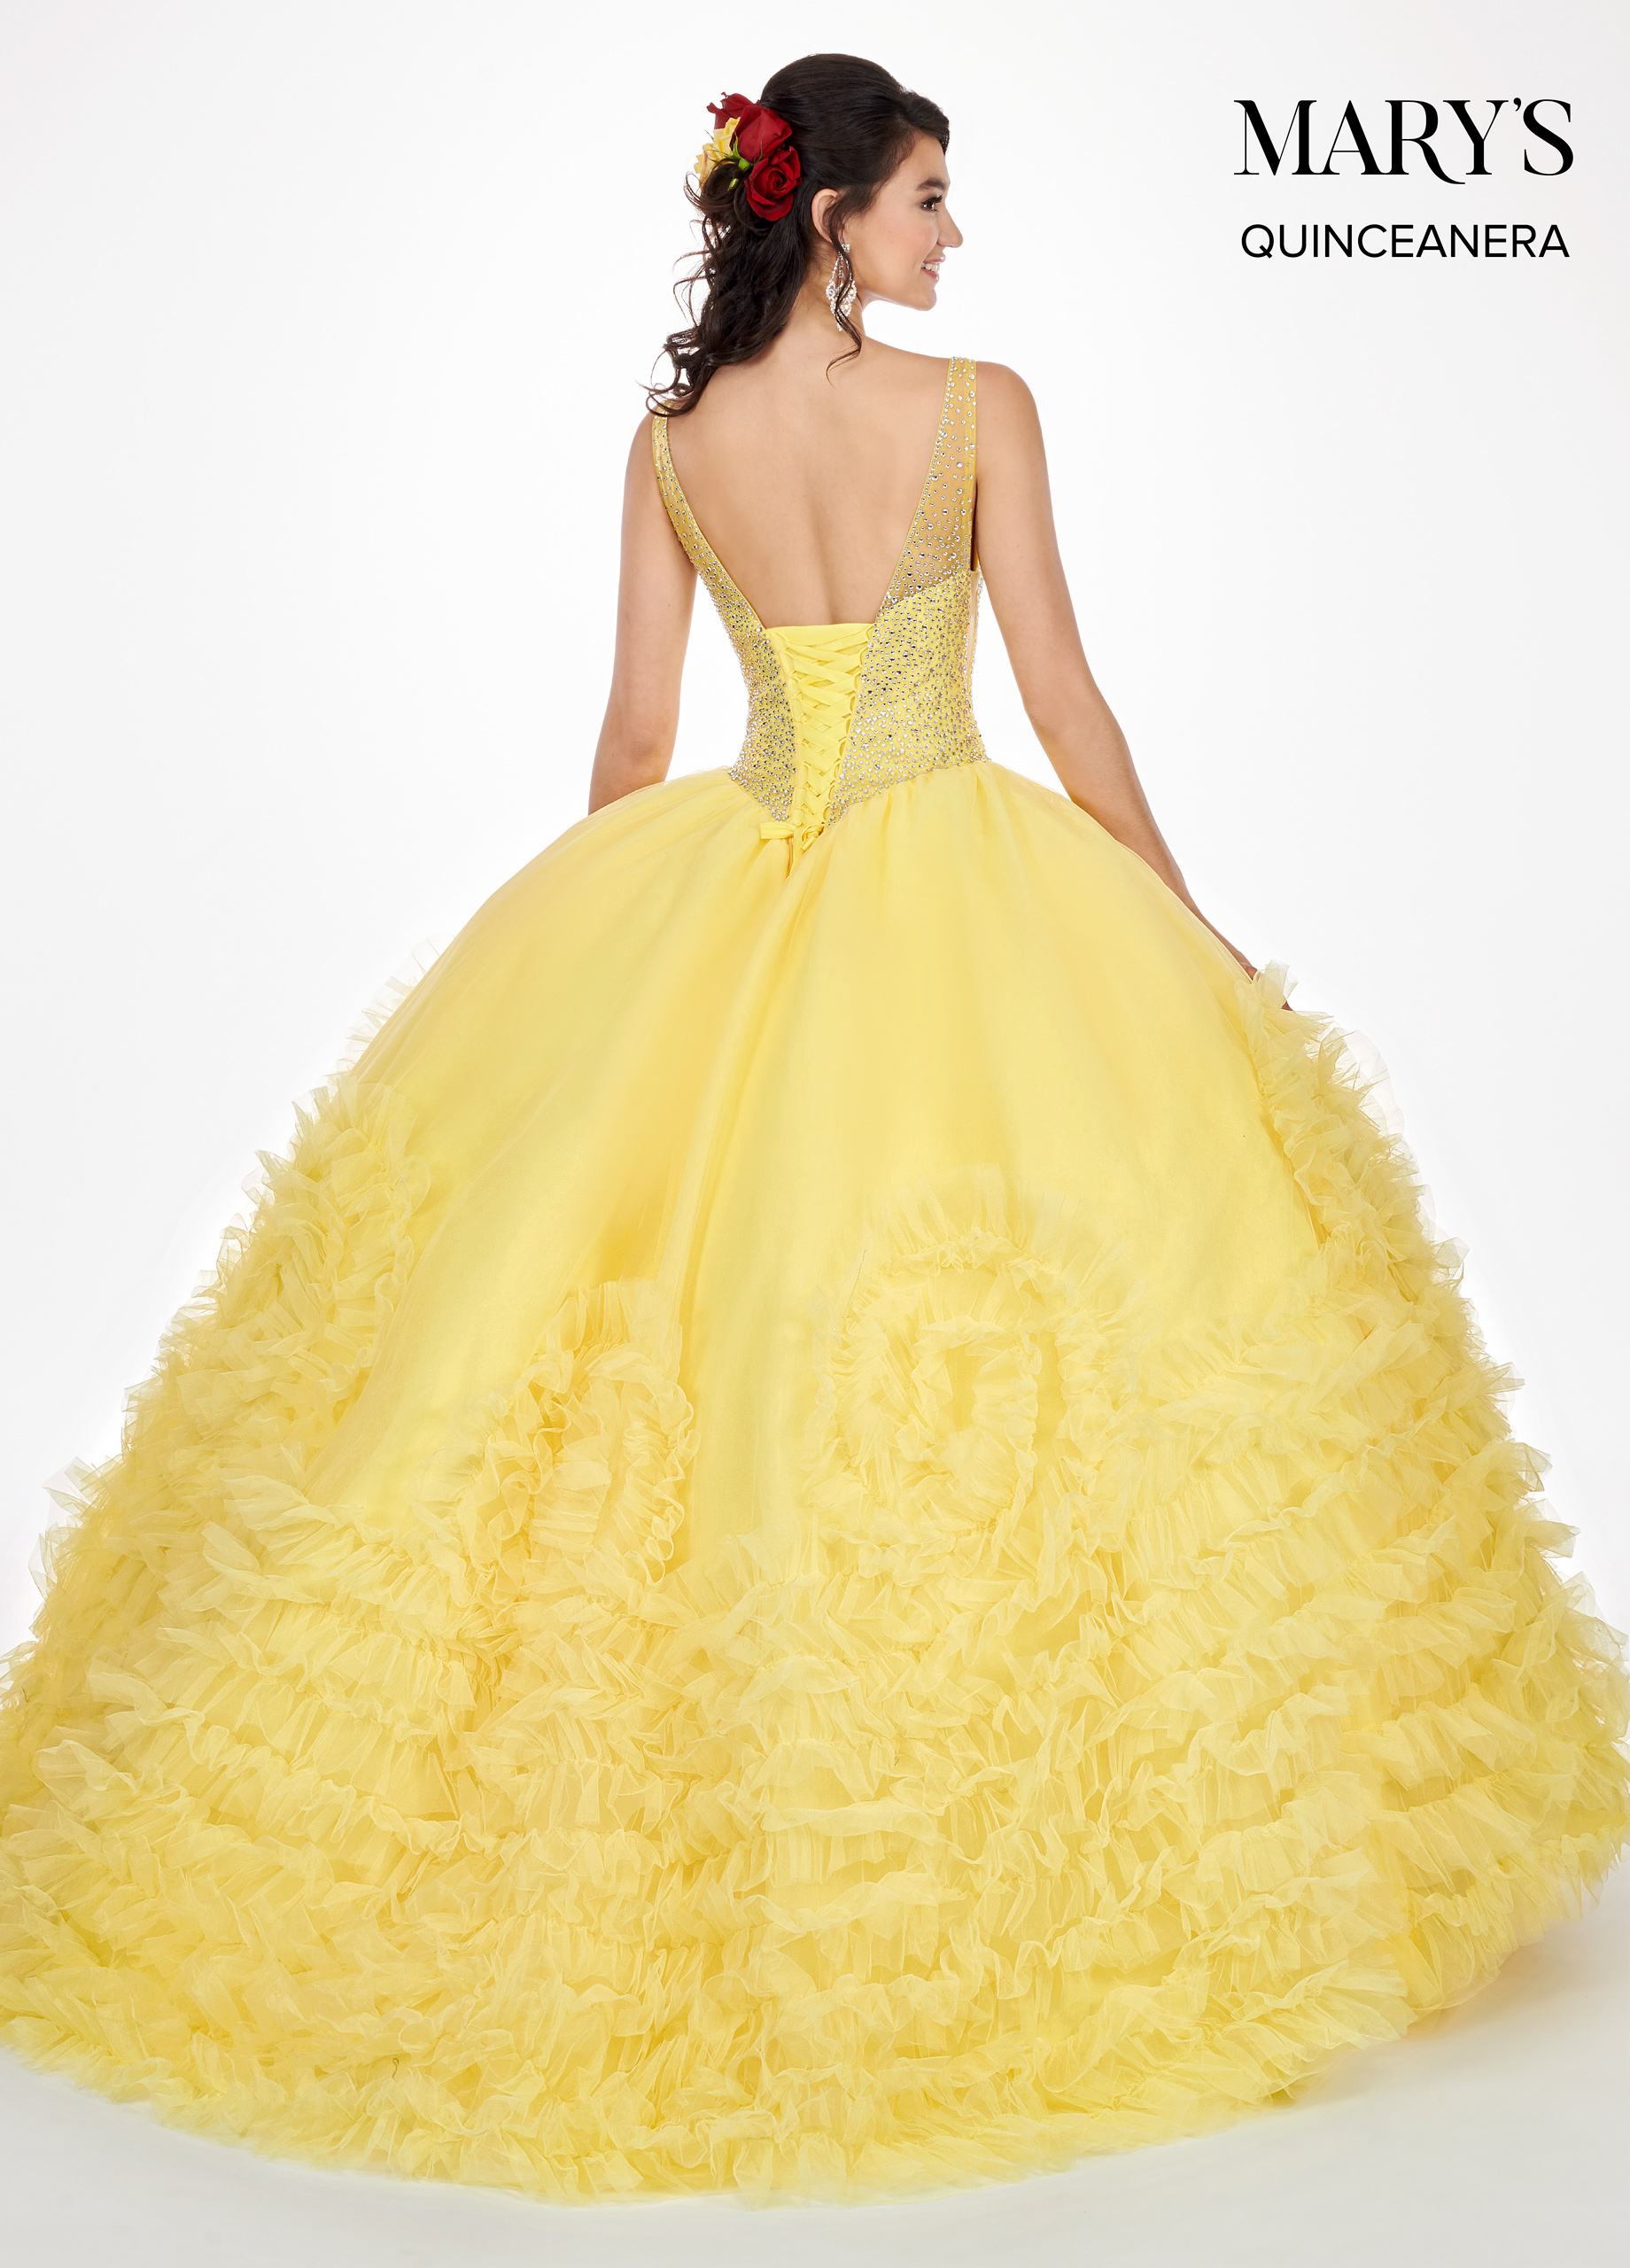 Marys Quinceanera Dresses | Mary's Quinceanera | Style - MQ1039